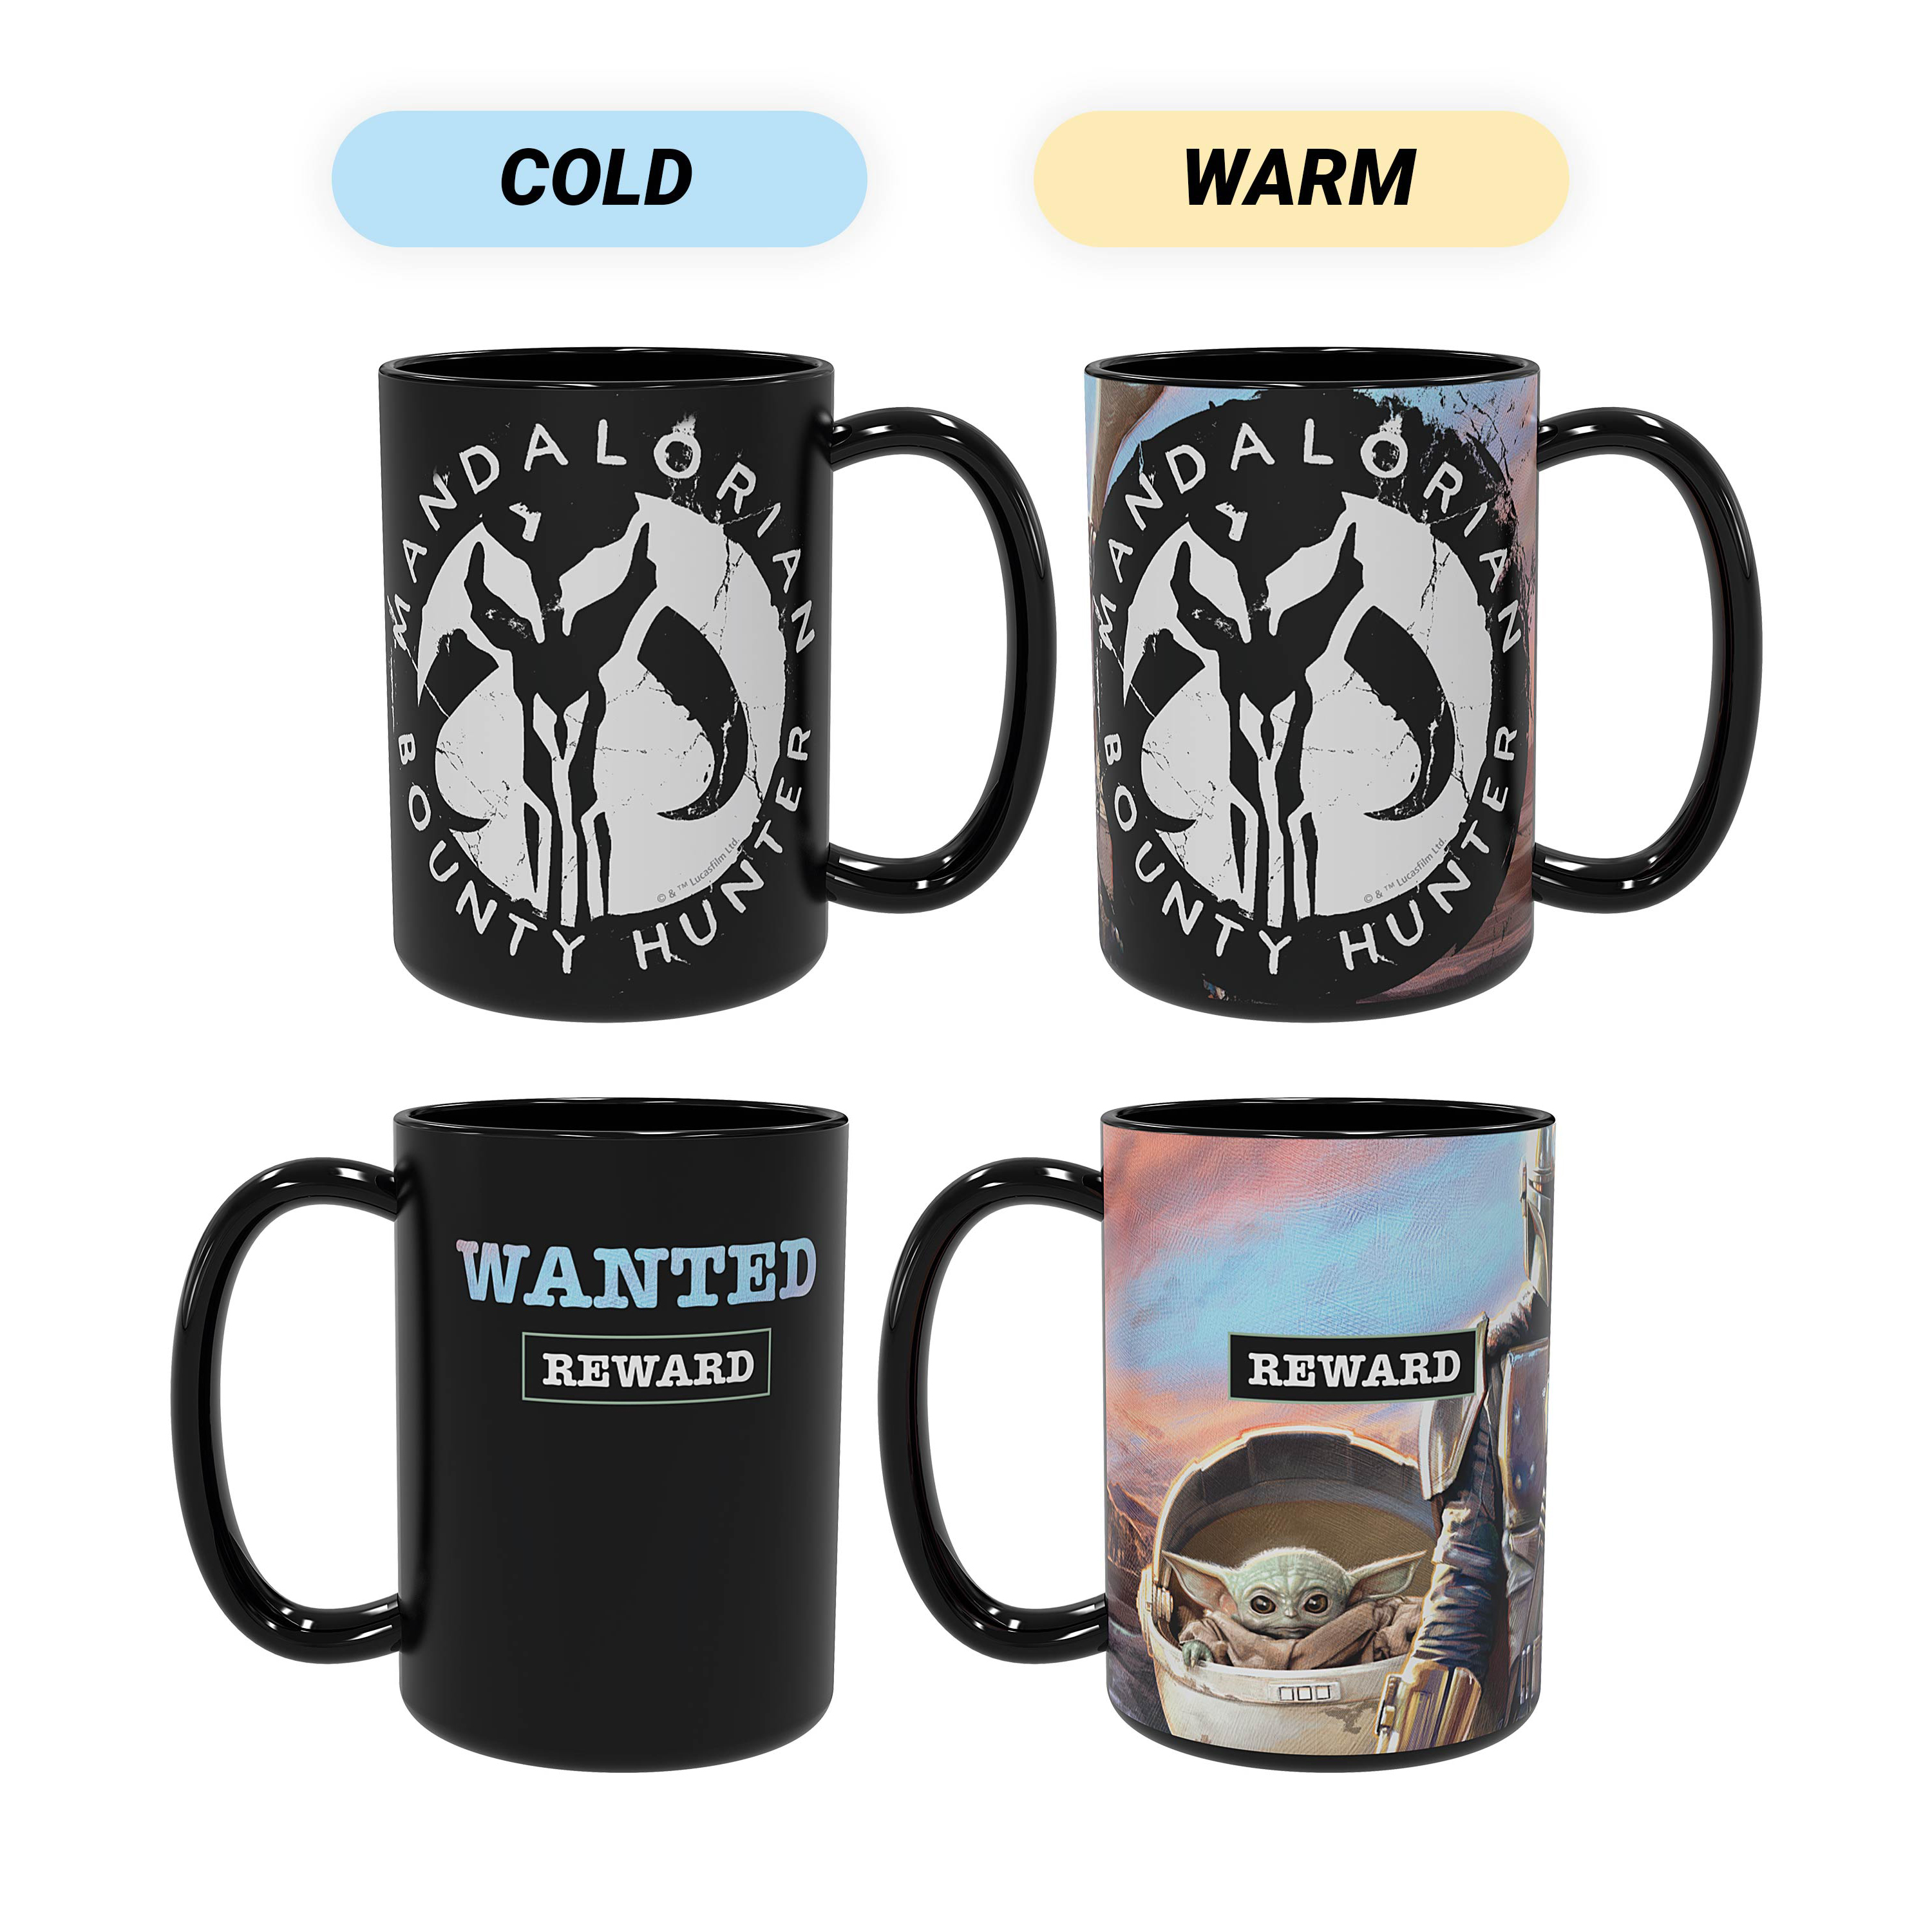 Star Wars: The Mandalorian 15 ounce Ceramic Coffee Mugs, The Mandalorian slideshow image 1